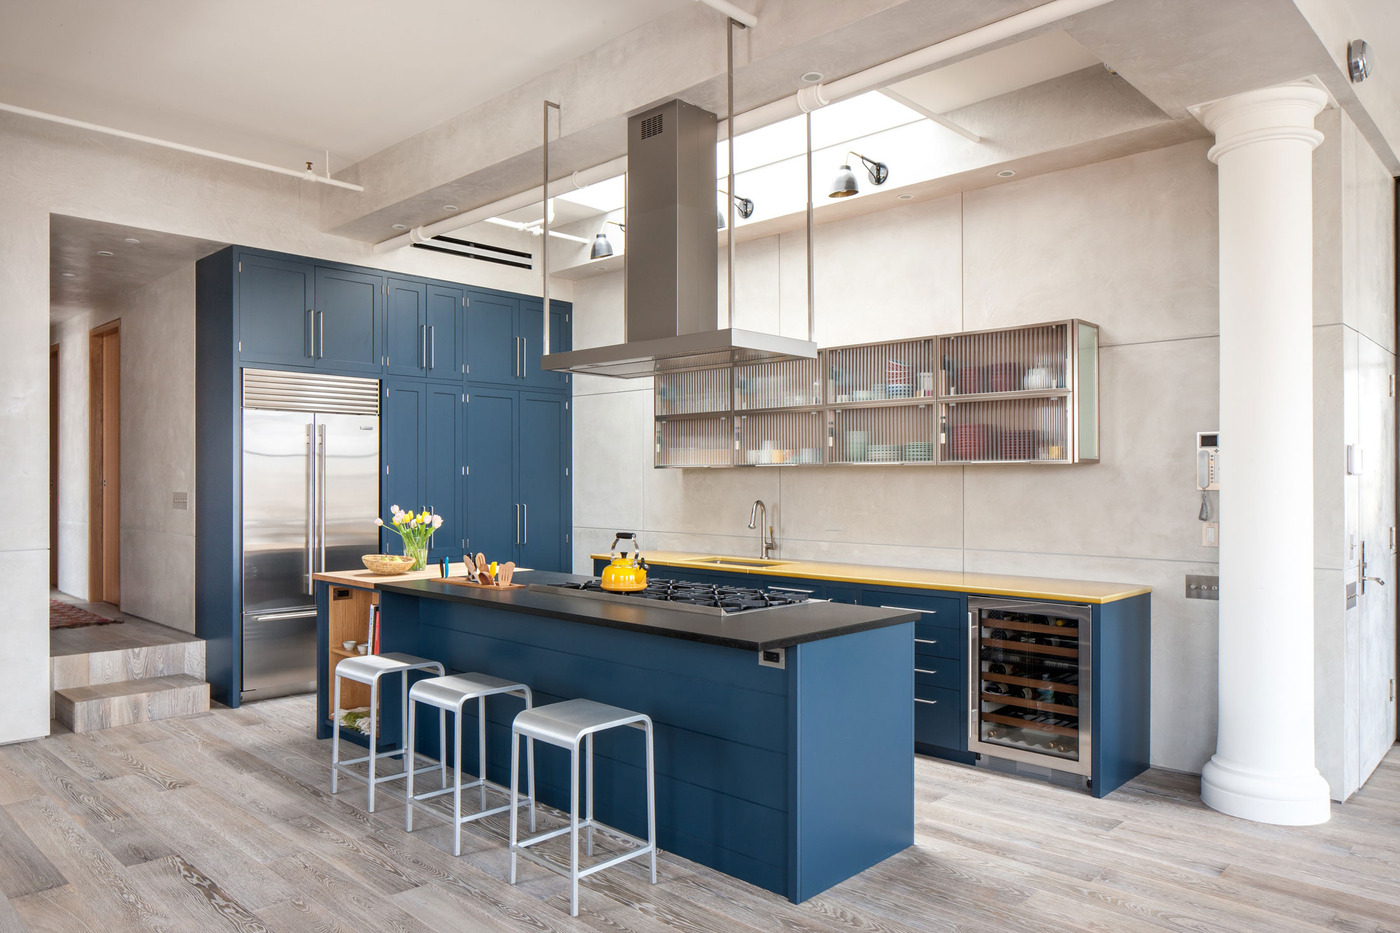 Royal Blue Kitchen On Light Color Floors Is A Modern Contemporary Dream